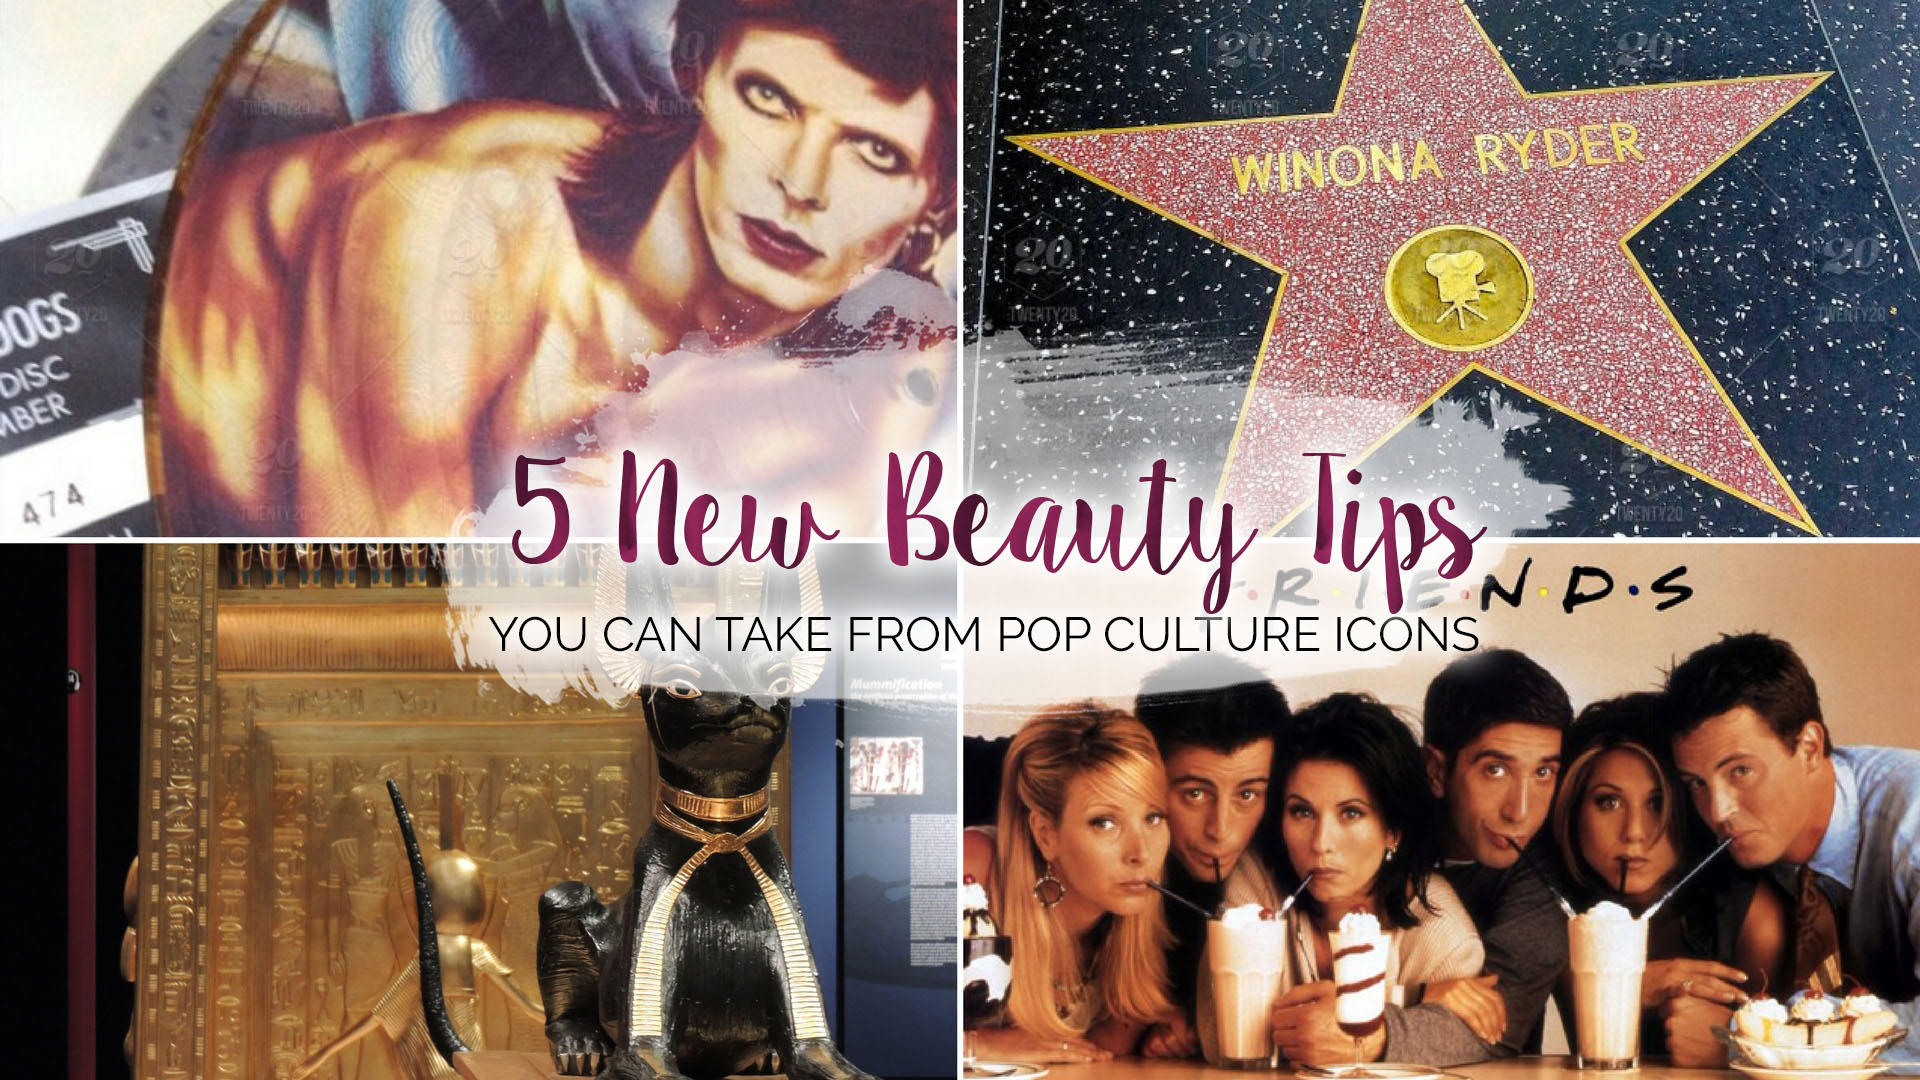 5 New Beauty Tips You Can Take from Pop Culture Icons